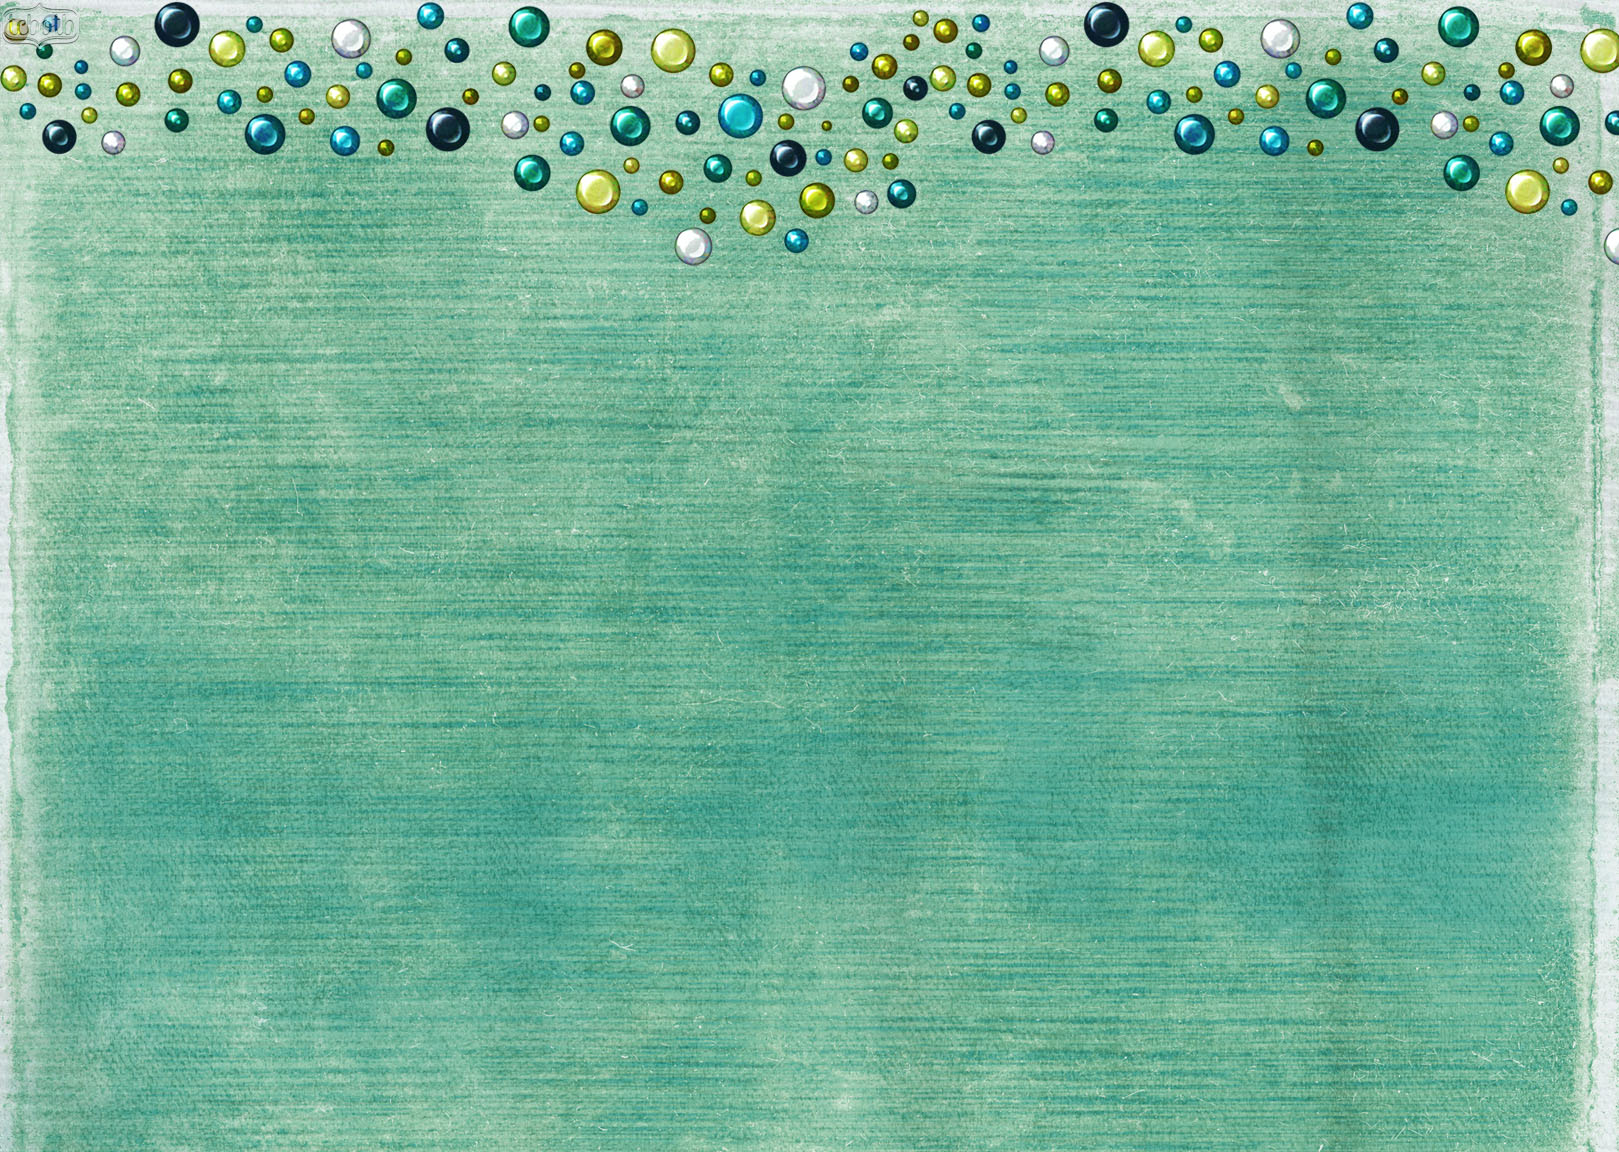 Sea Glass Twitter Background